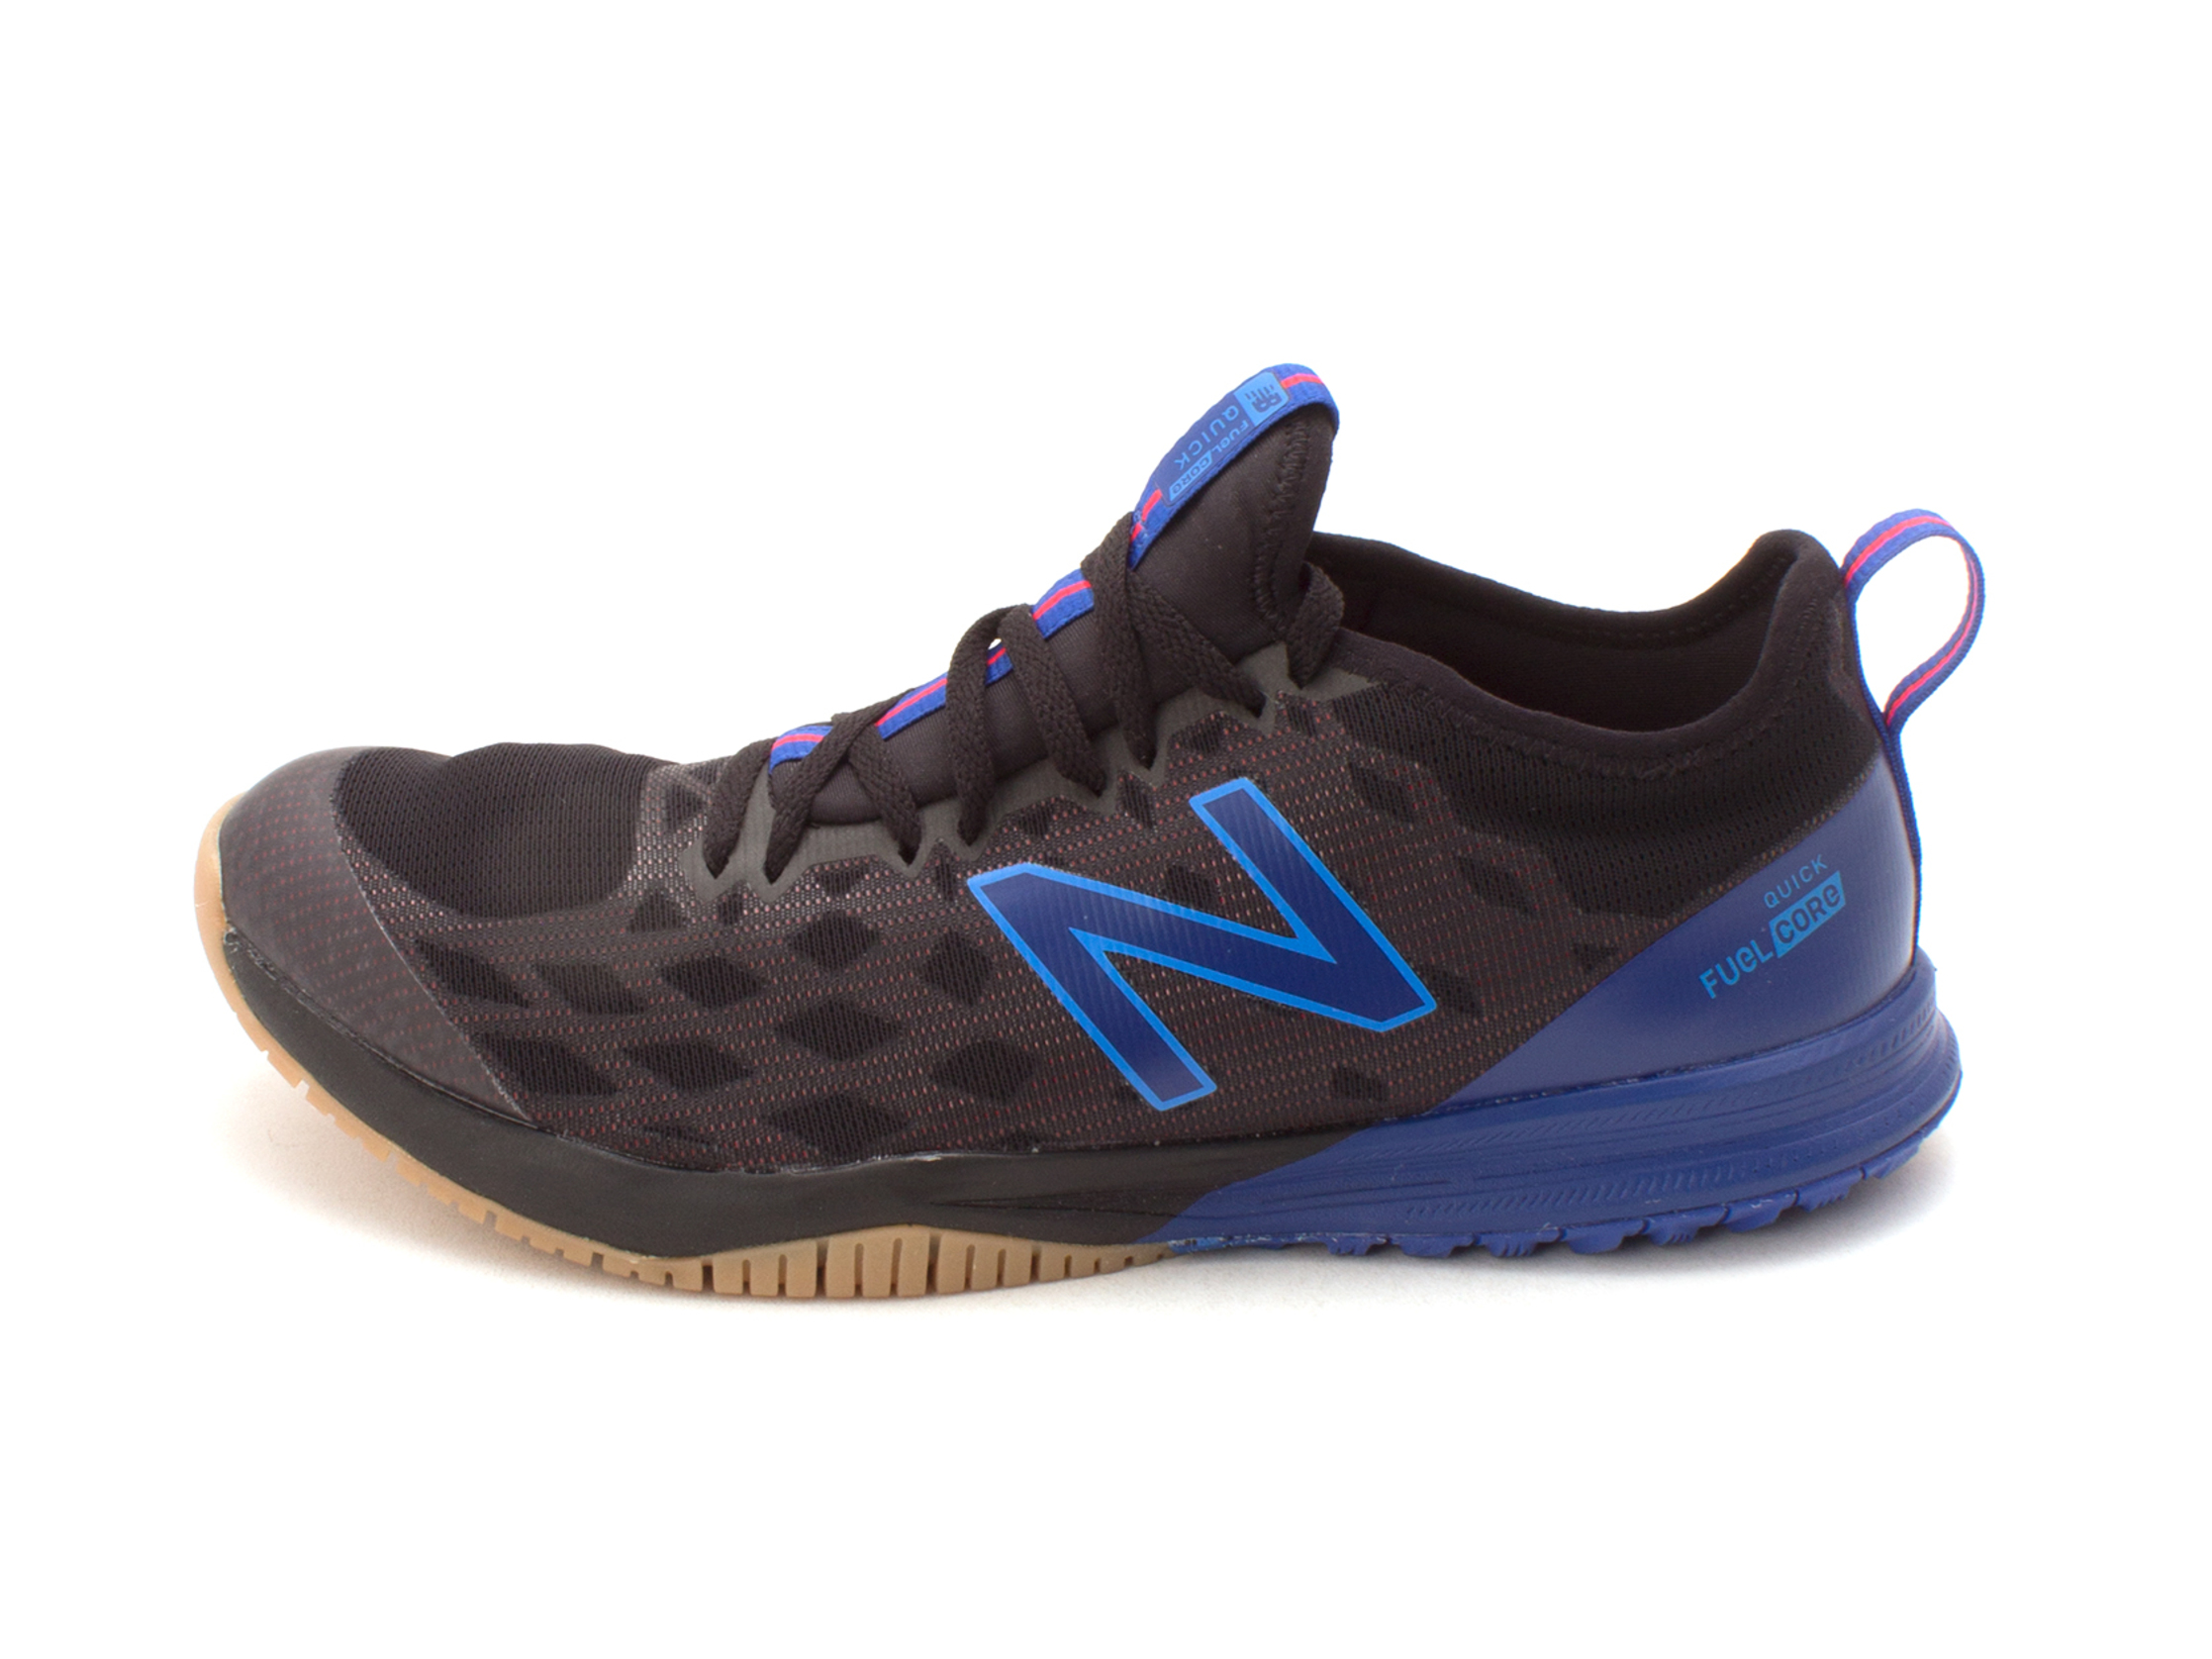 06f312ae4a0fb New Balance Mens hommes Fabric Low Top Lace Up, Black/blue/red ...